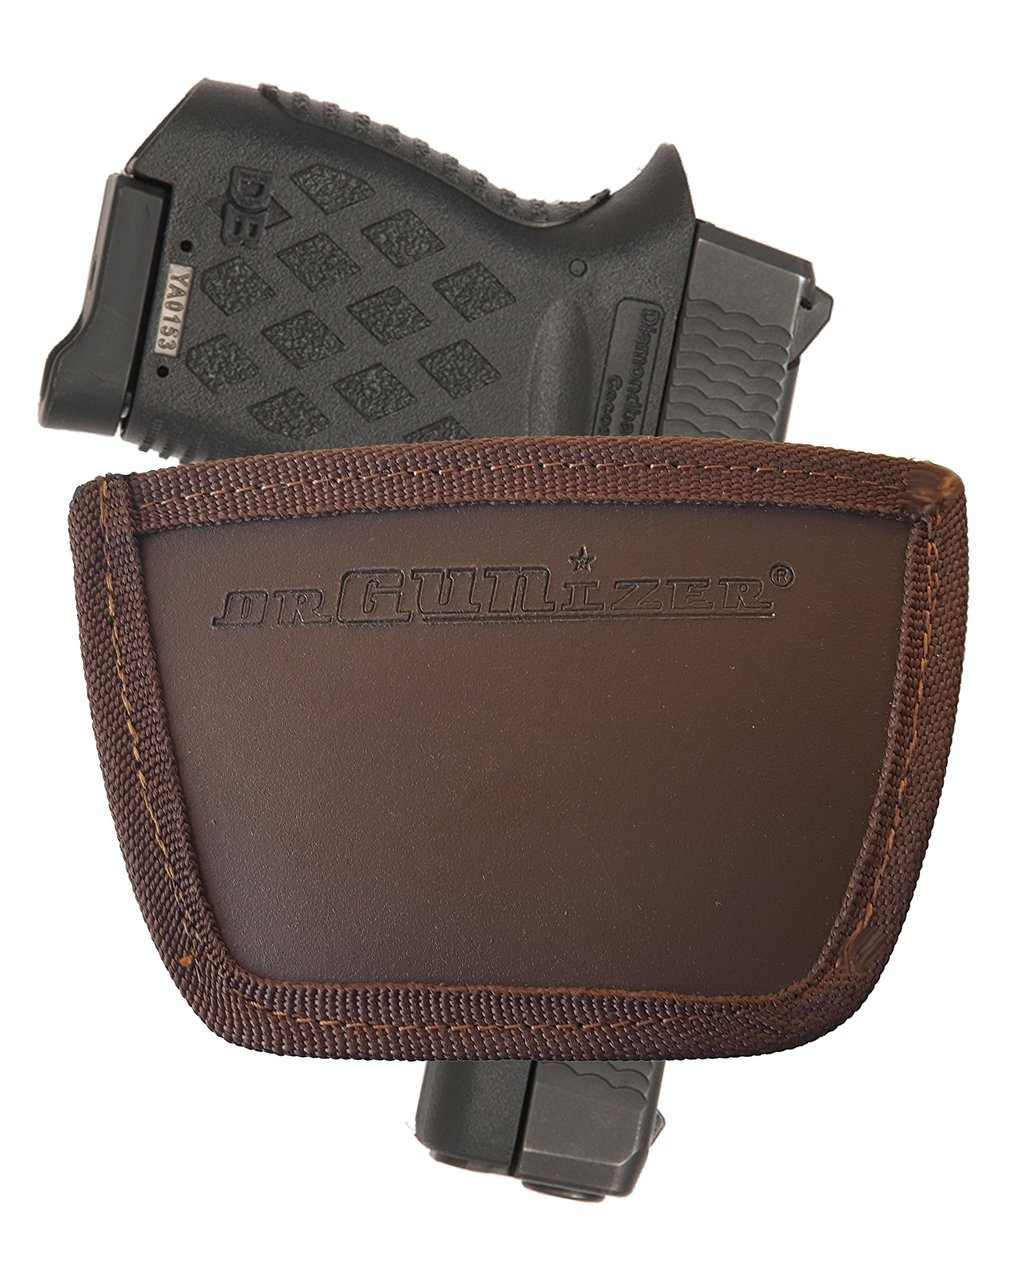 Garrison Grip Leather Inside and Outside Waistband Easy Slide Holster Fits Diamondback DB380 Brown